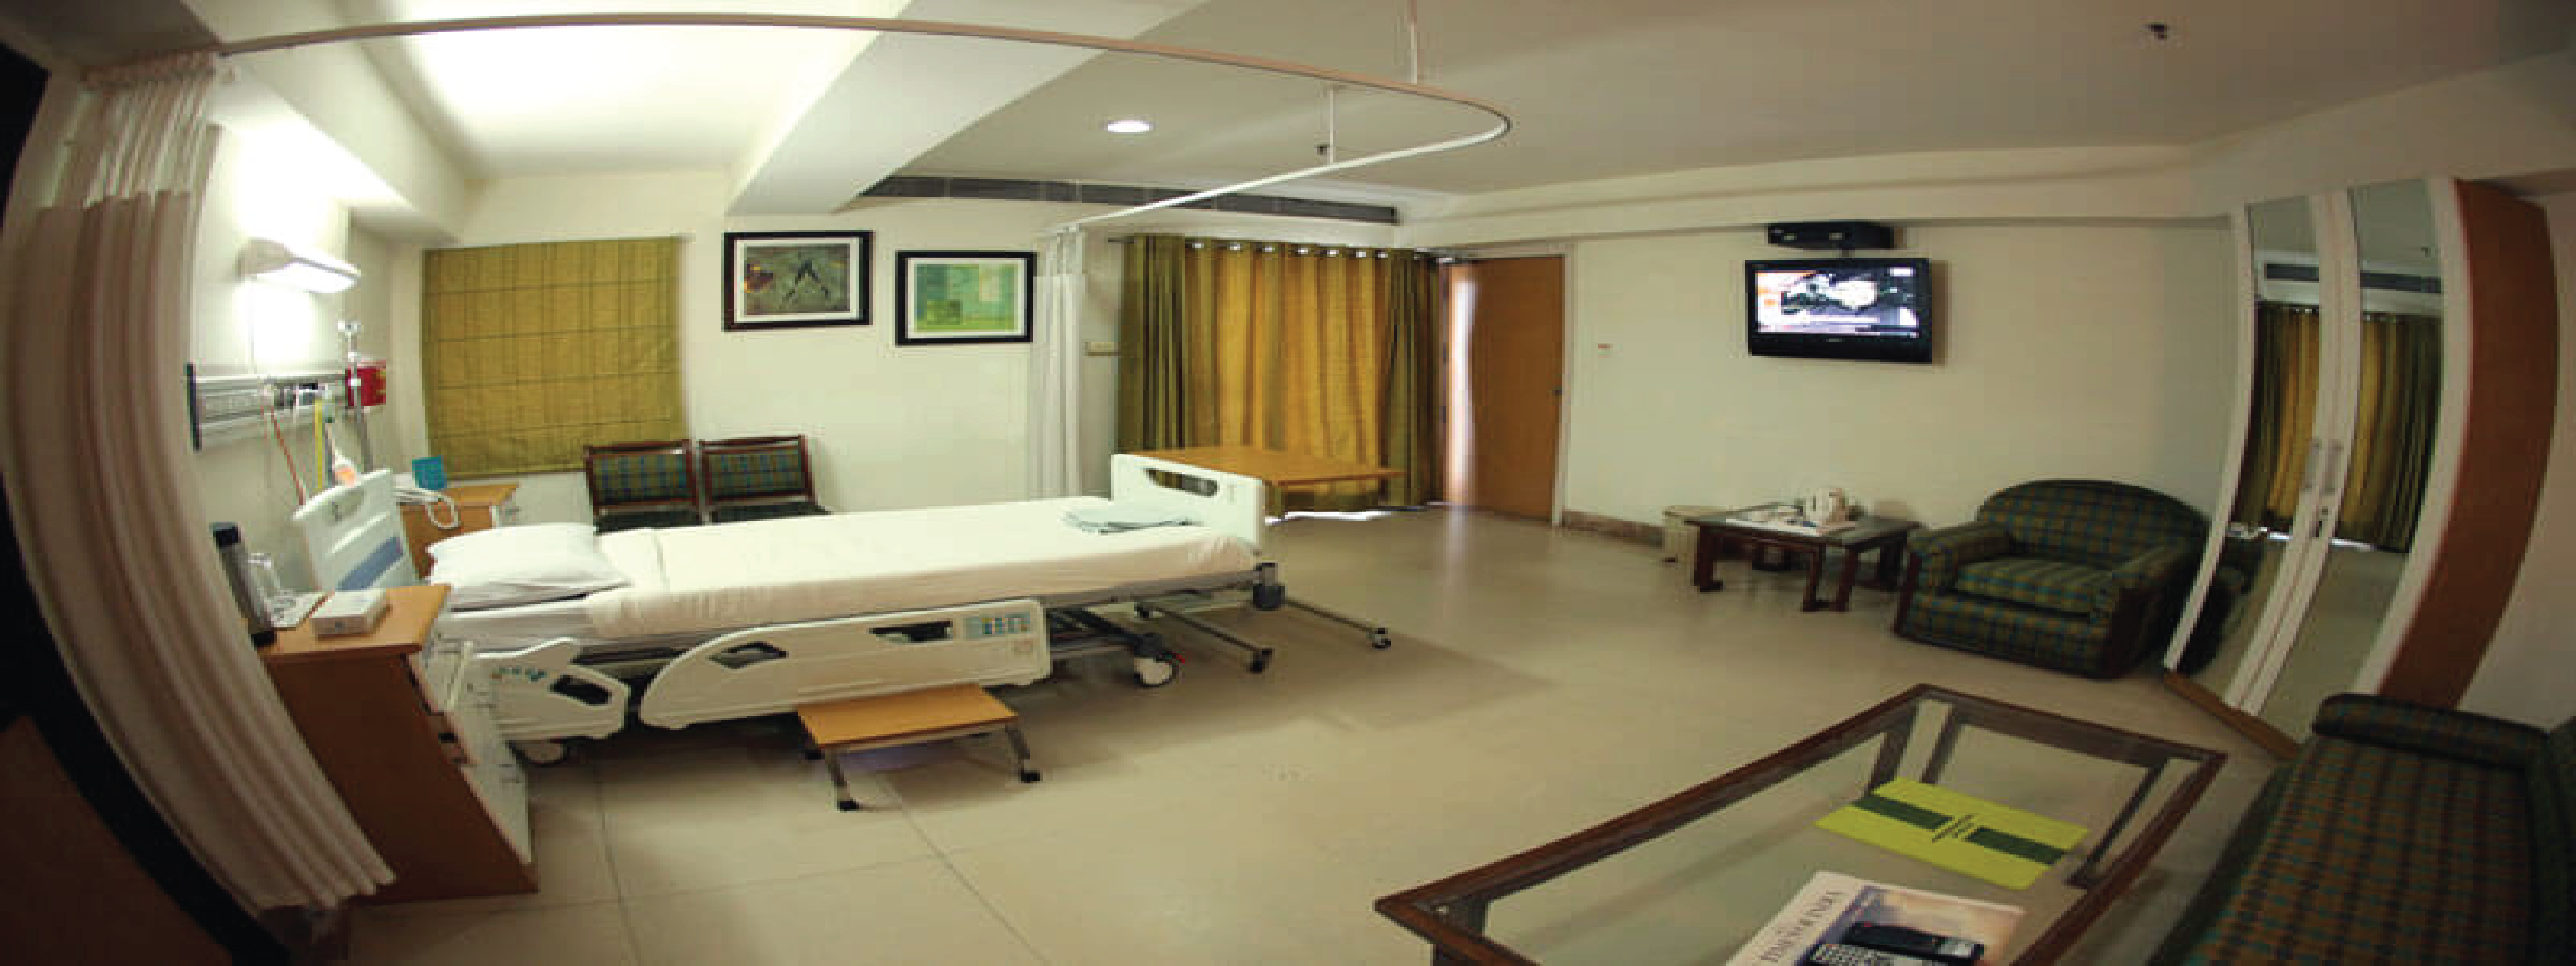 Apollo Hospital Patient Room